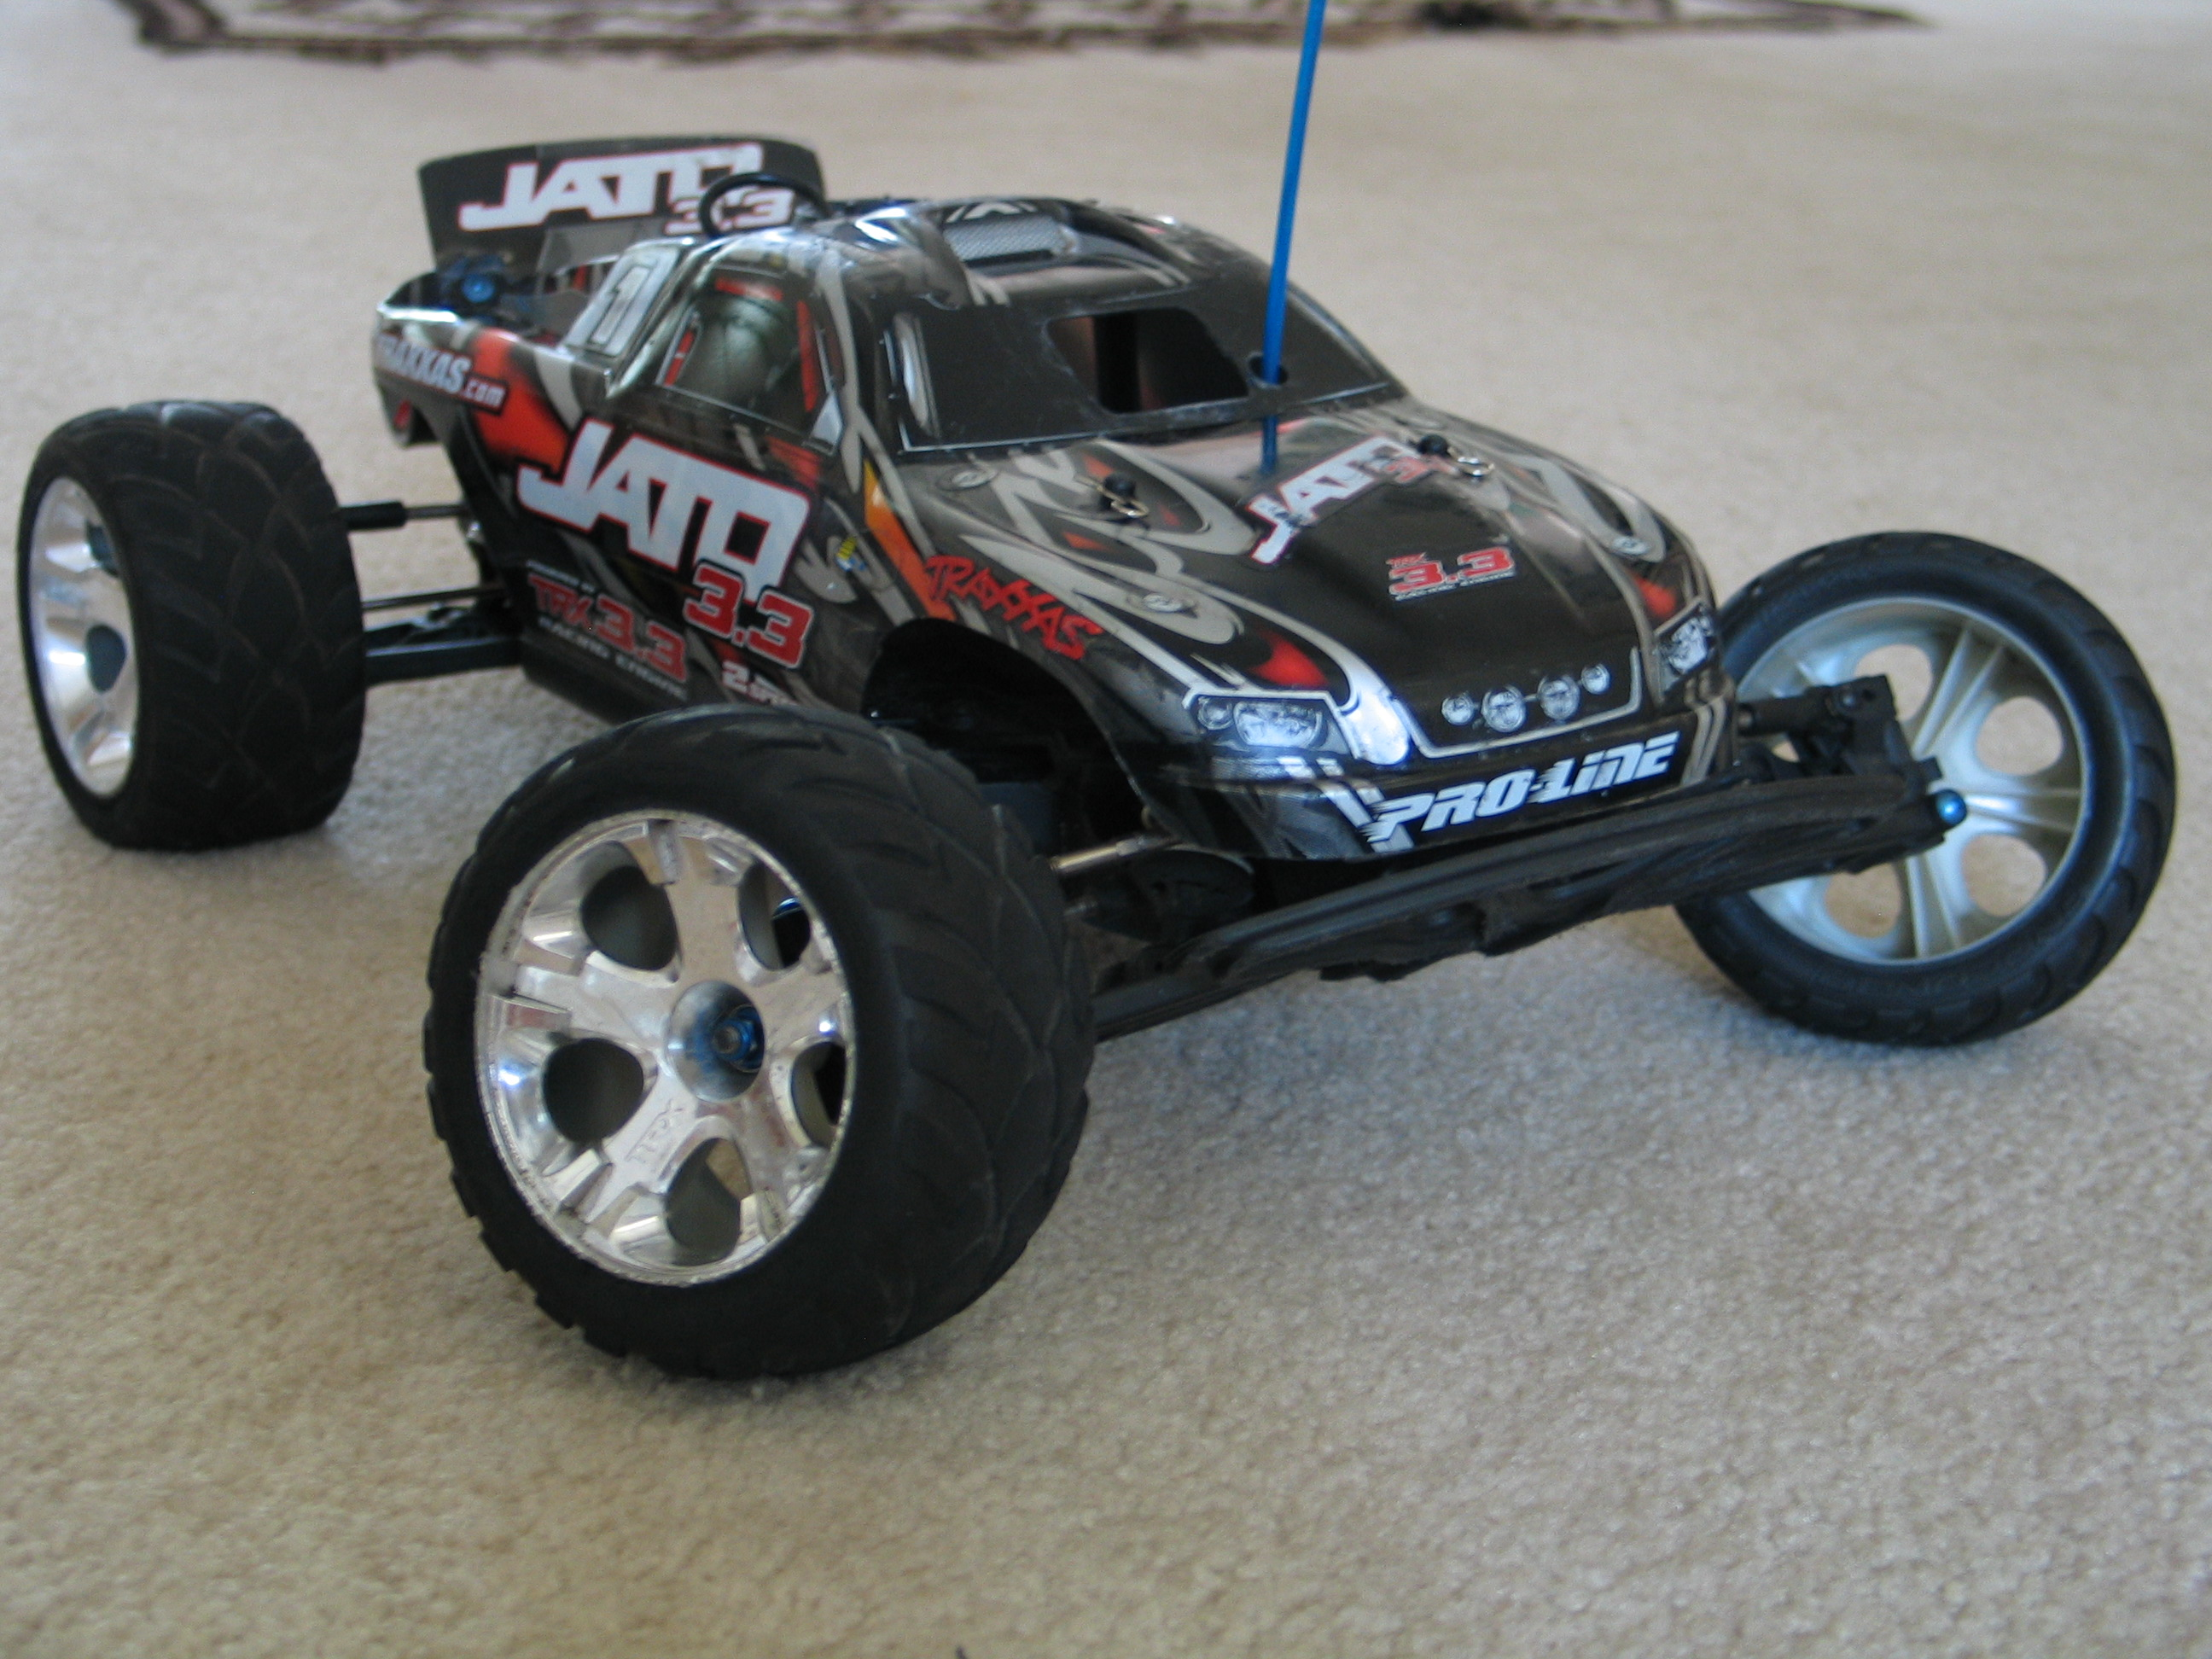 Traxxas Jato 3 3 nitro powered stadium truck